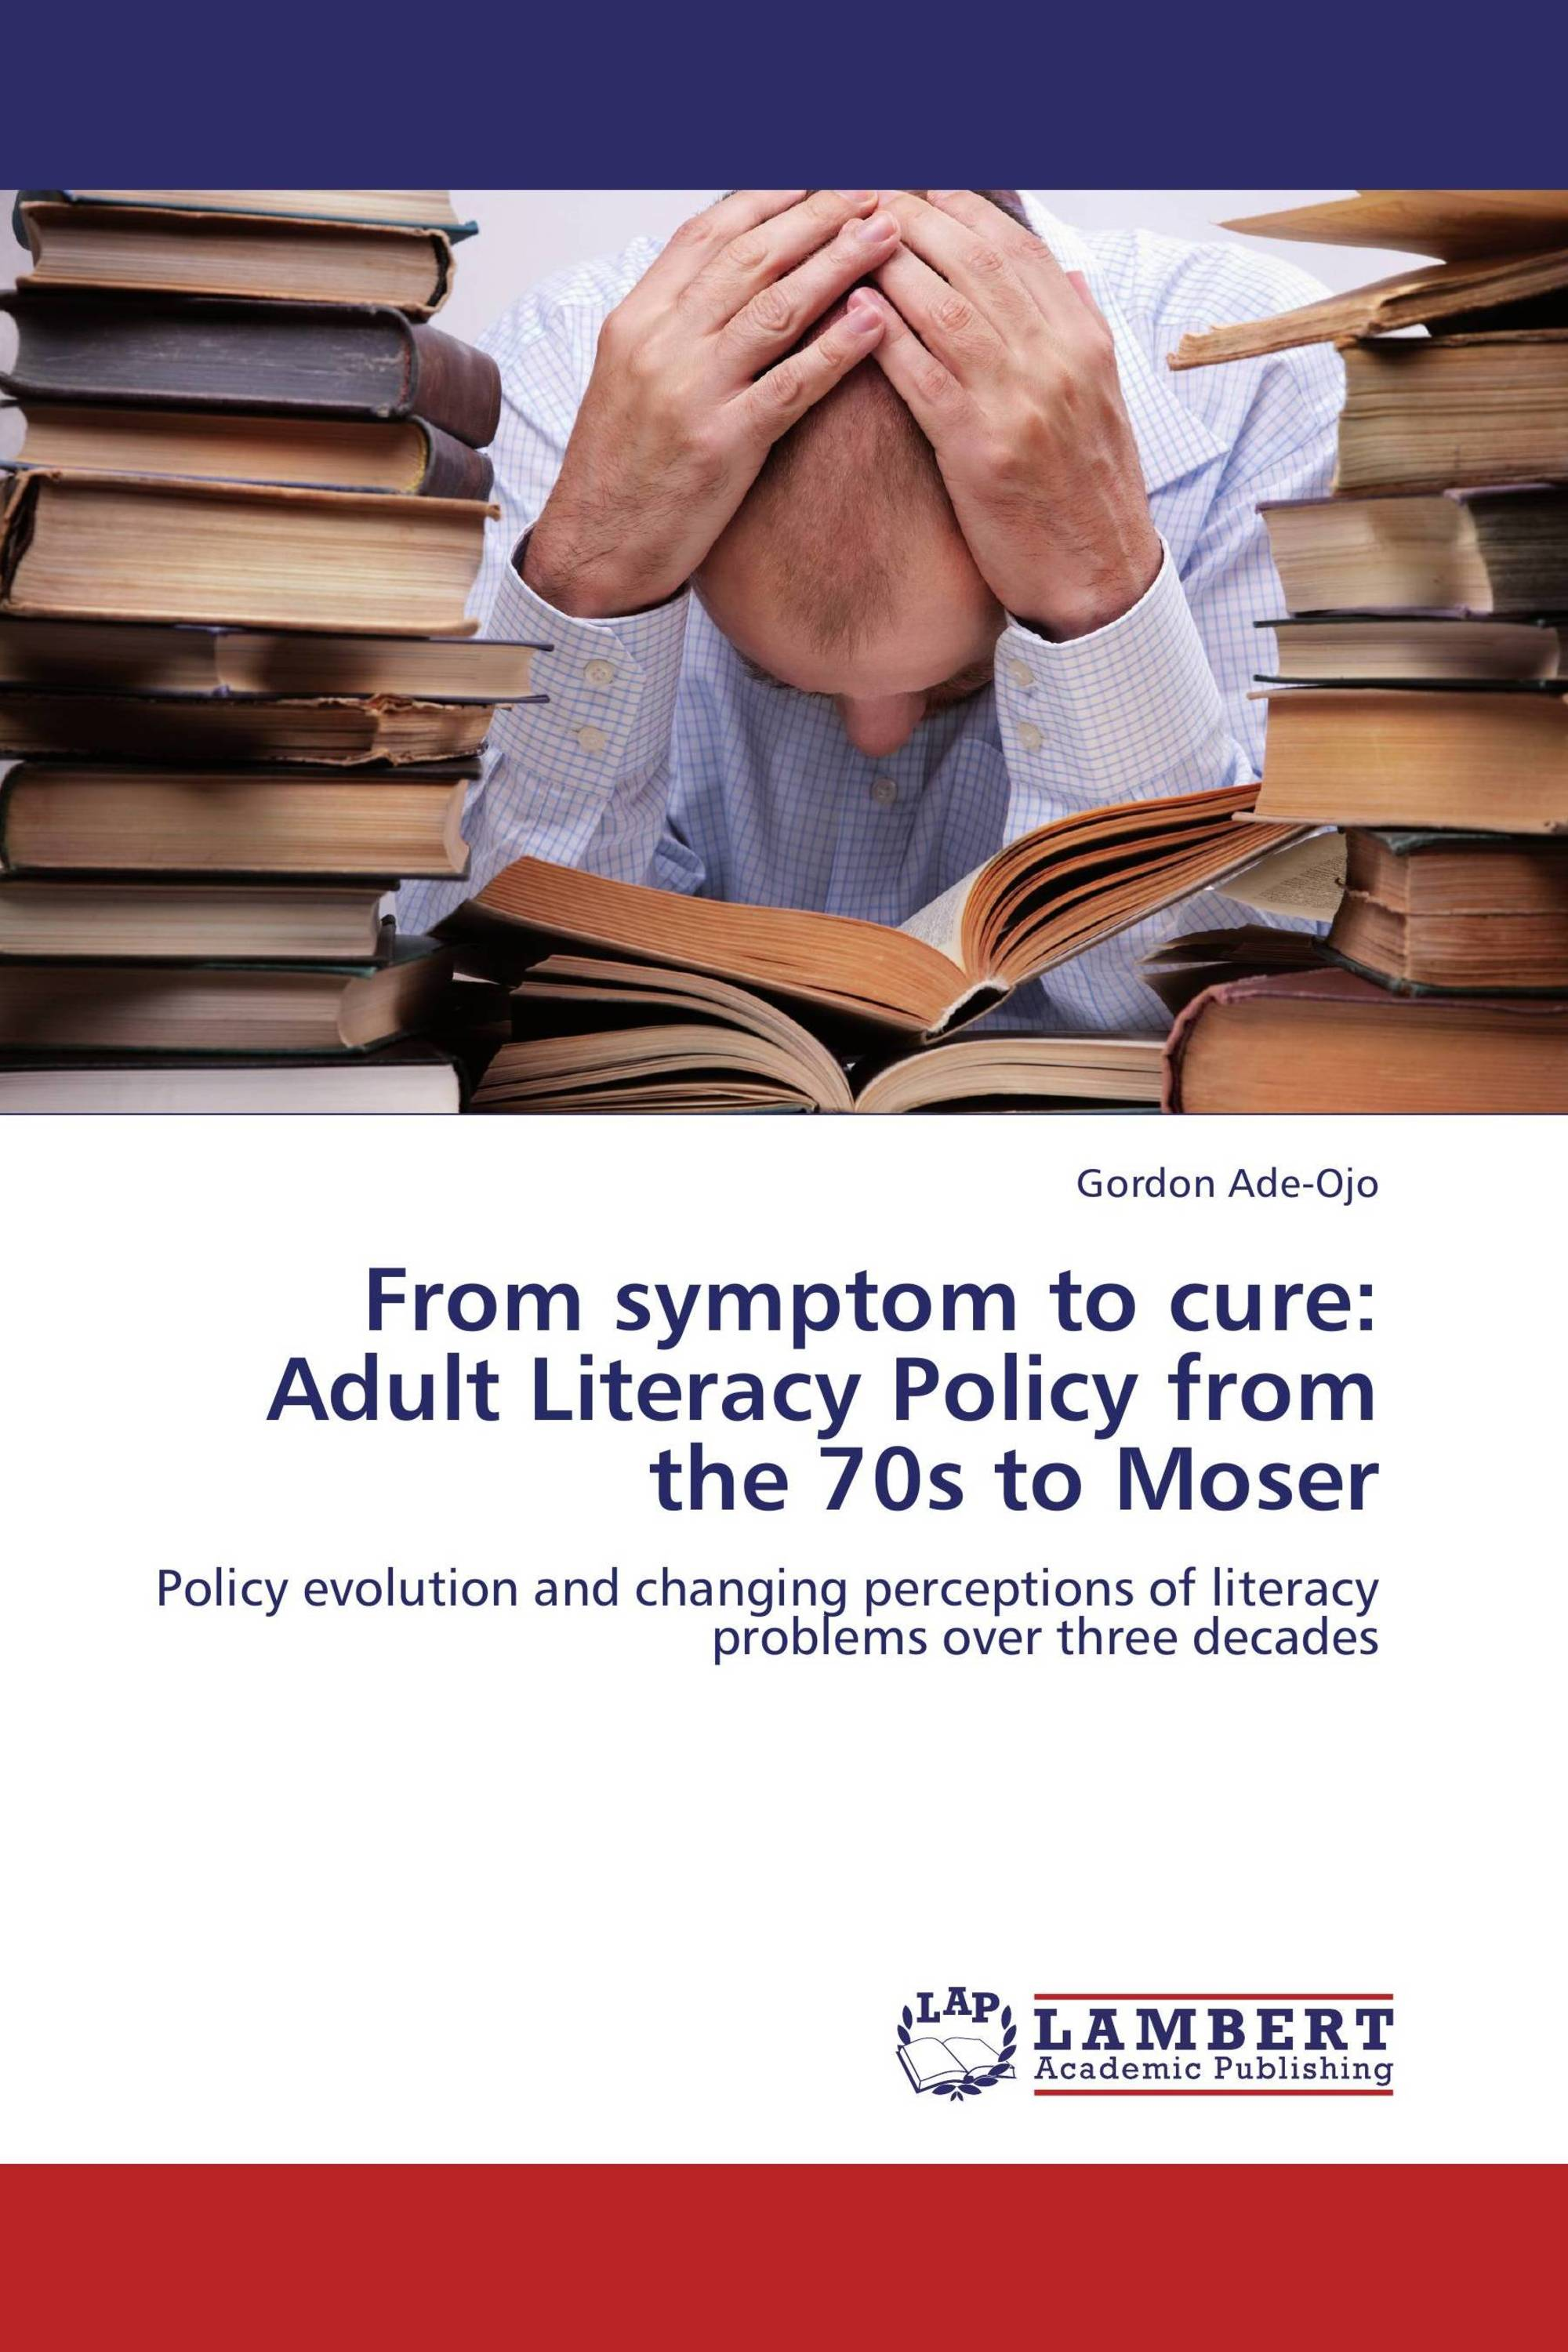 From symptom to cure: Adult Literacy Policy from the 70s to Moser